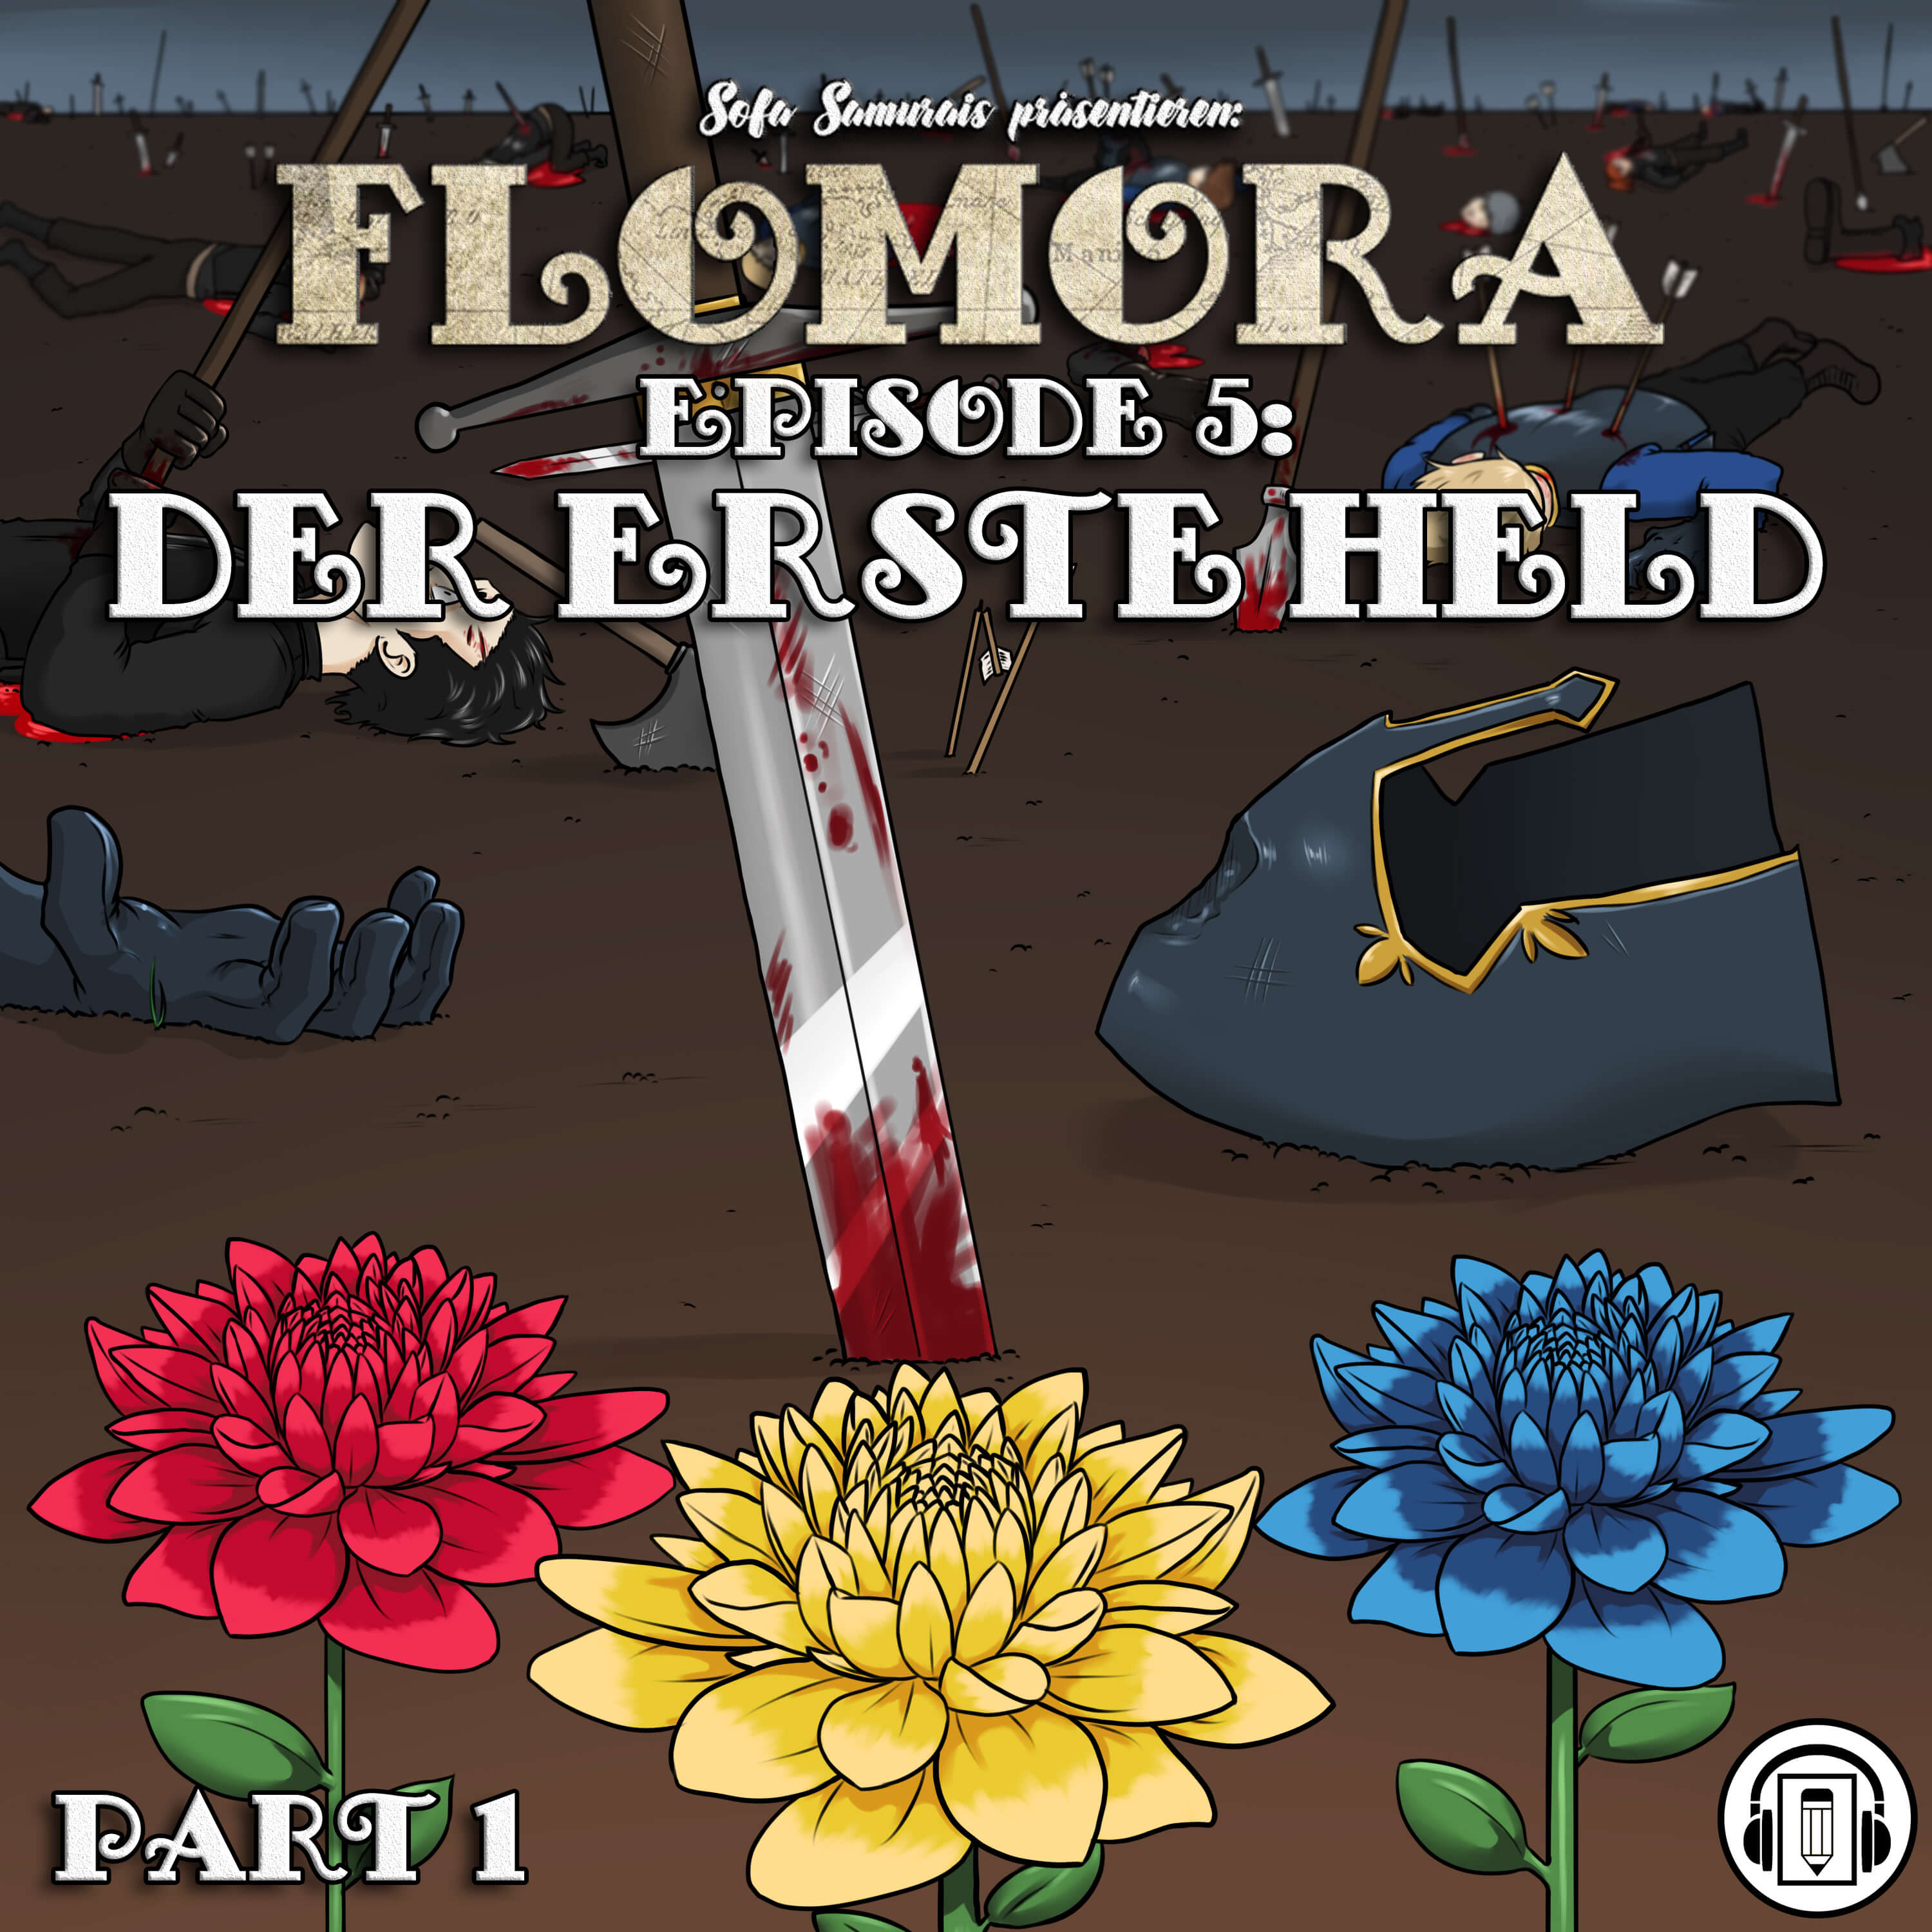 Flomora_5_Episodenbild_Compressed